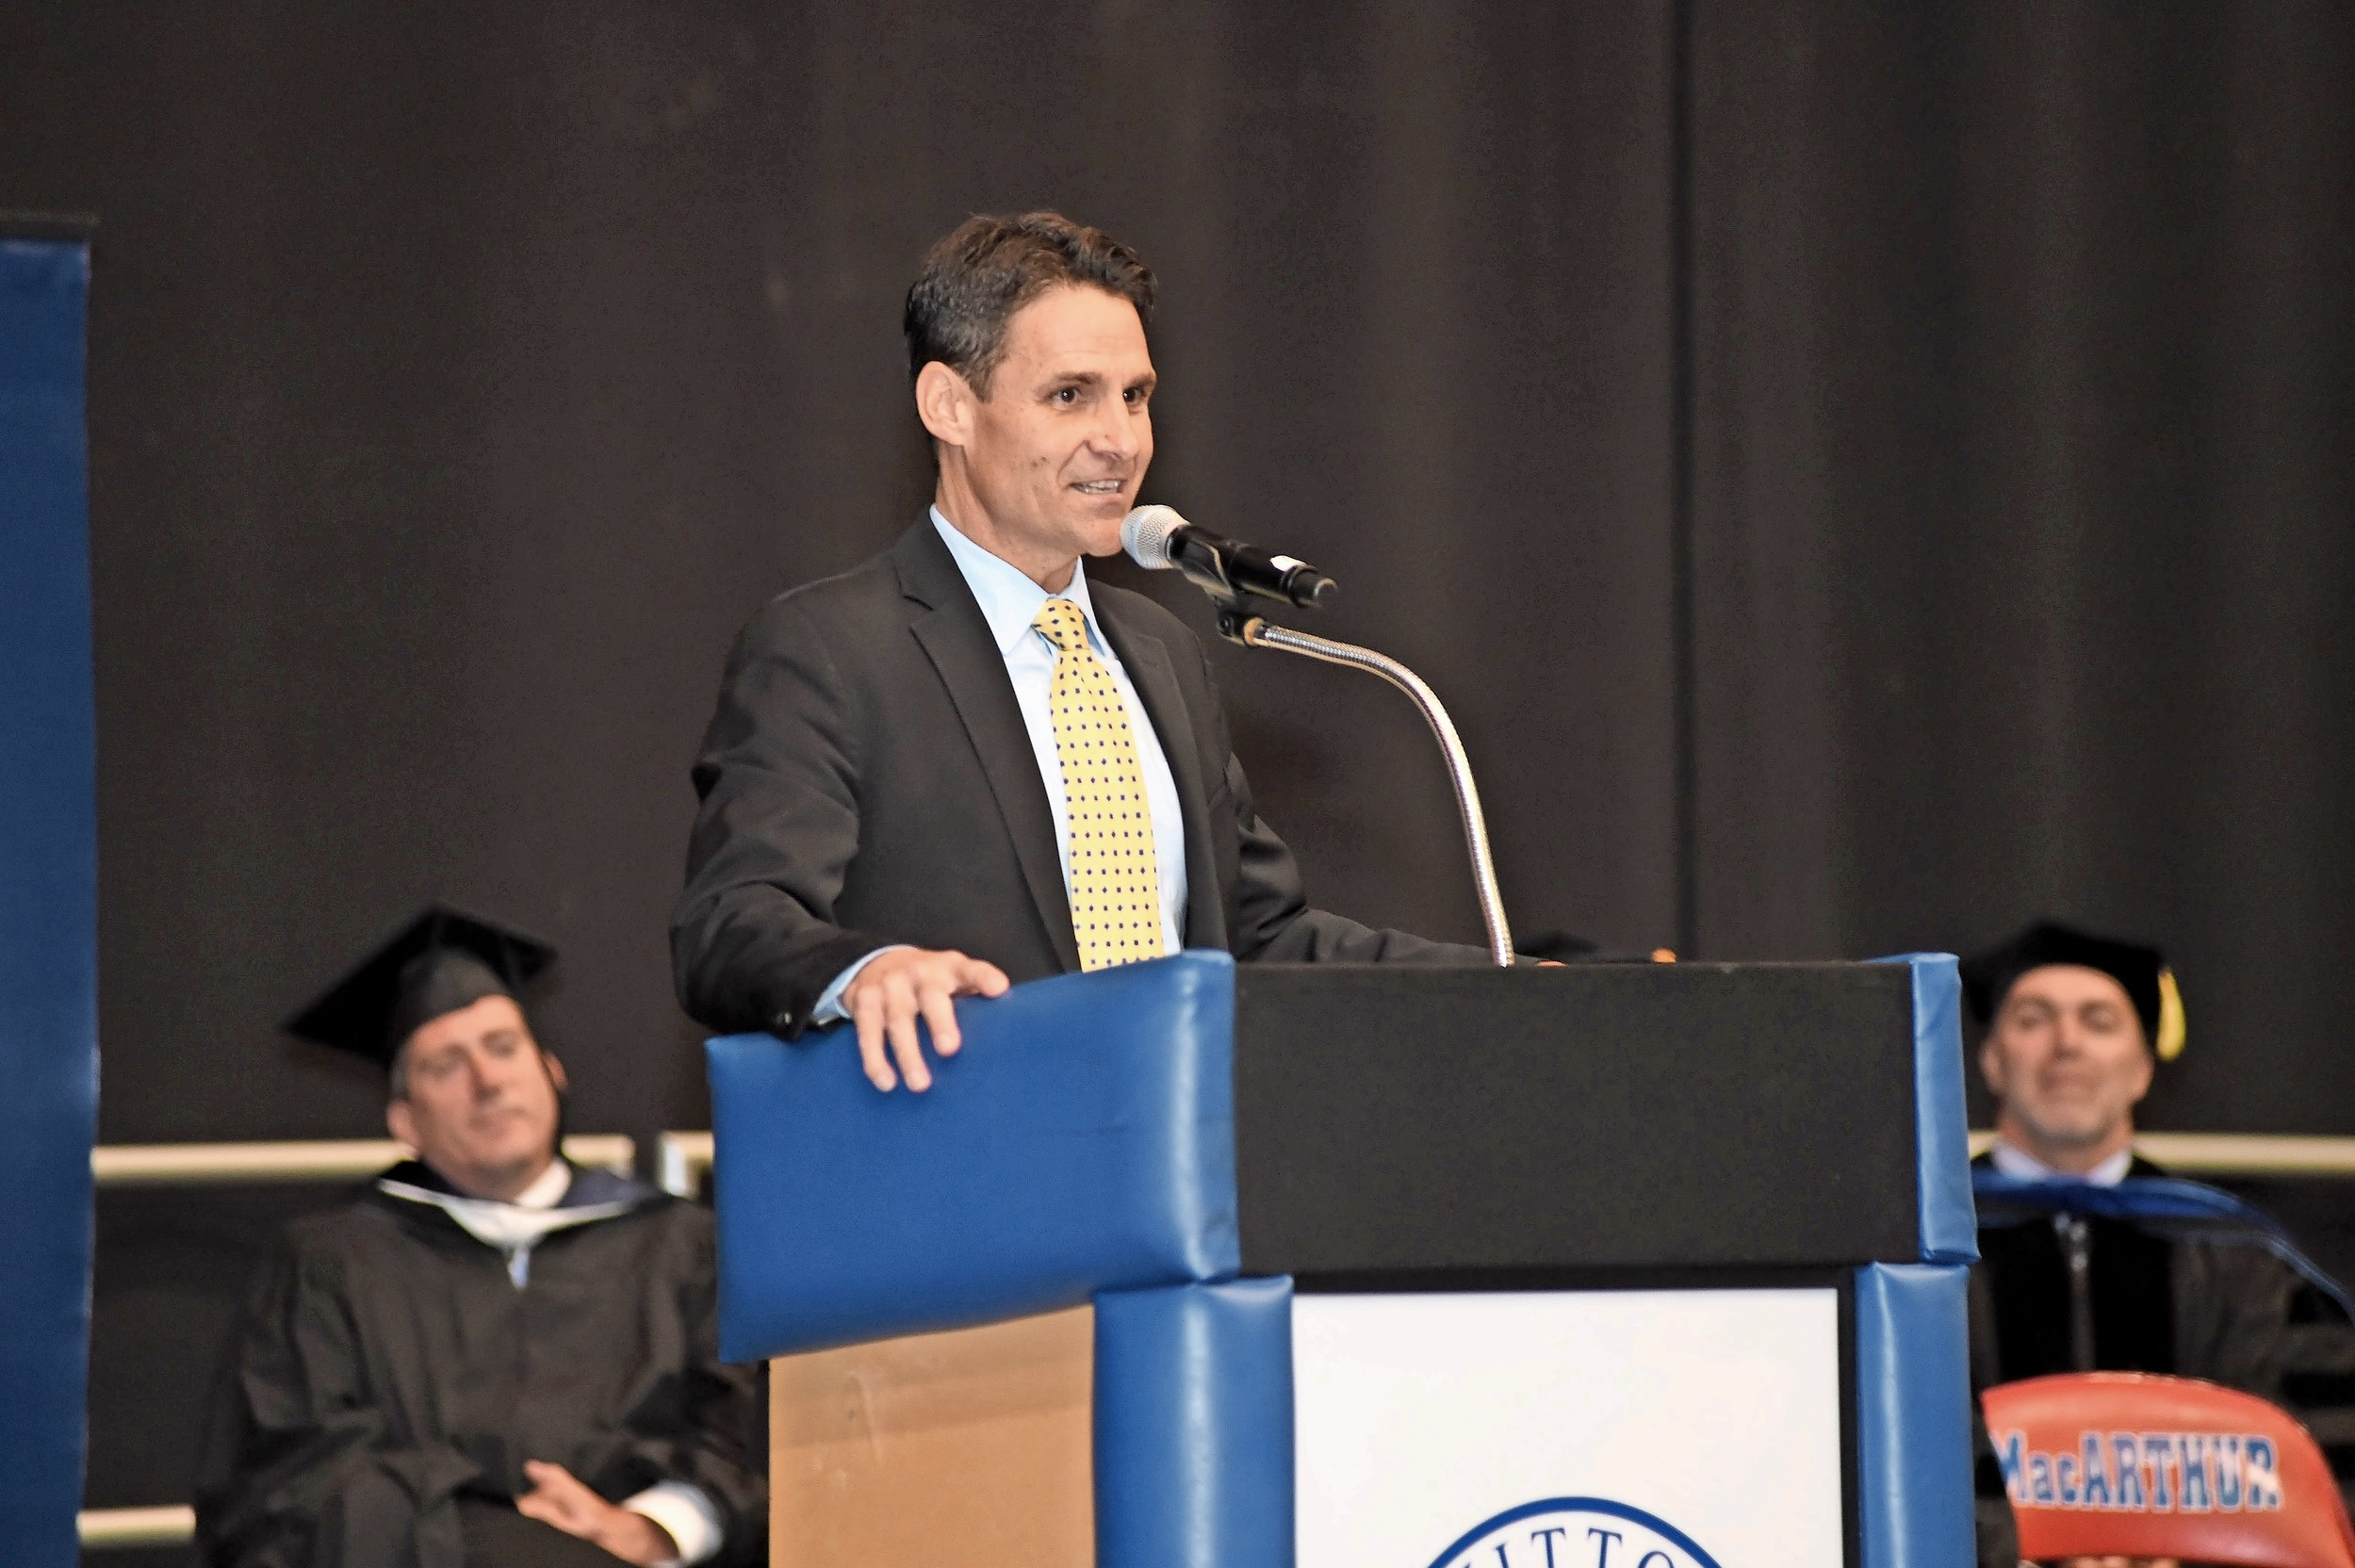 John Theissen, a Wantagh resident, local philanthropist and MacArthur alumnus, was the keynote speaker.